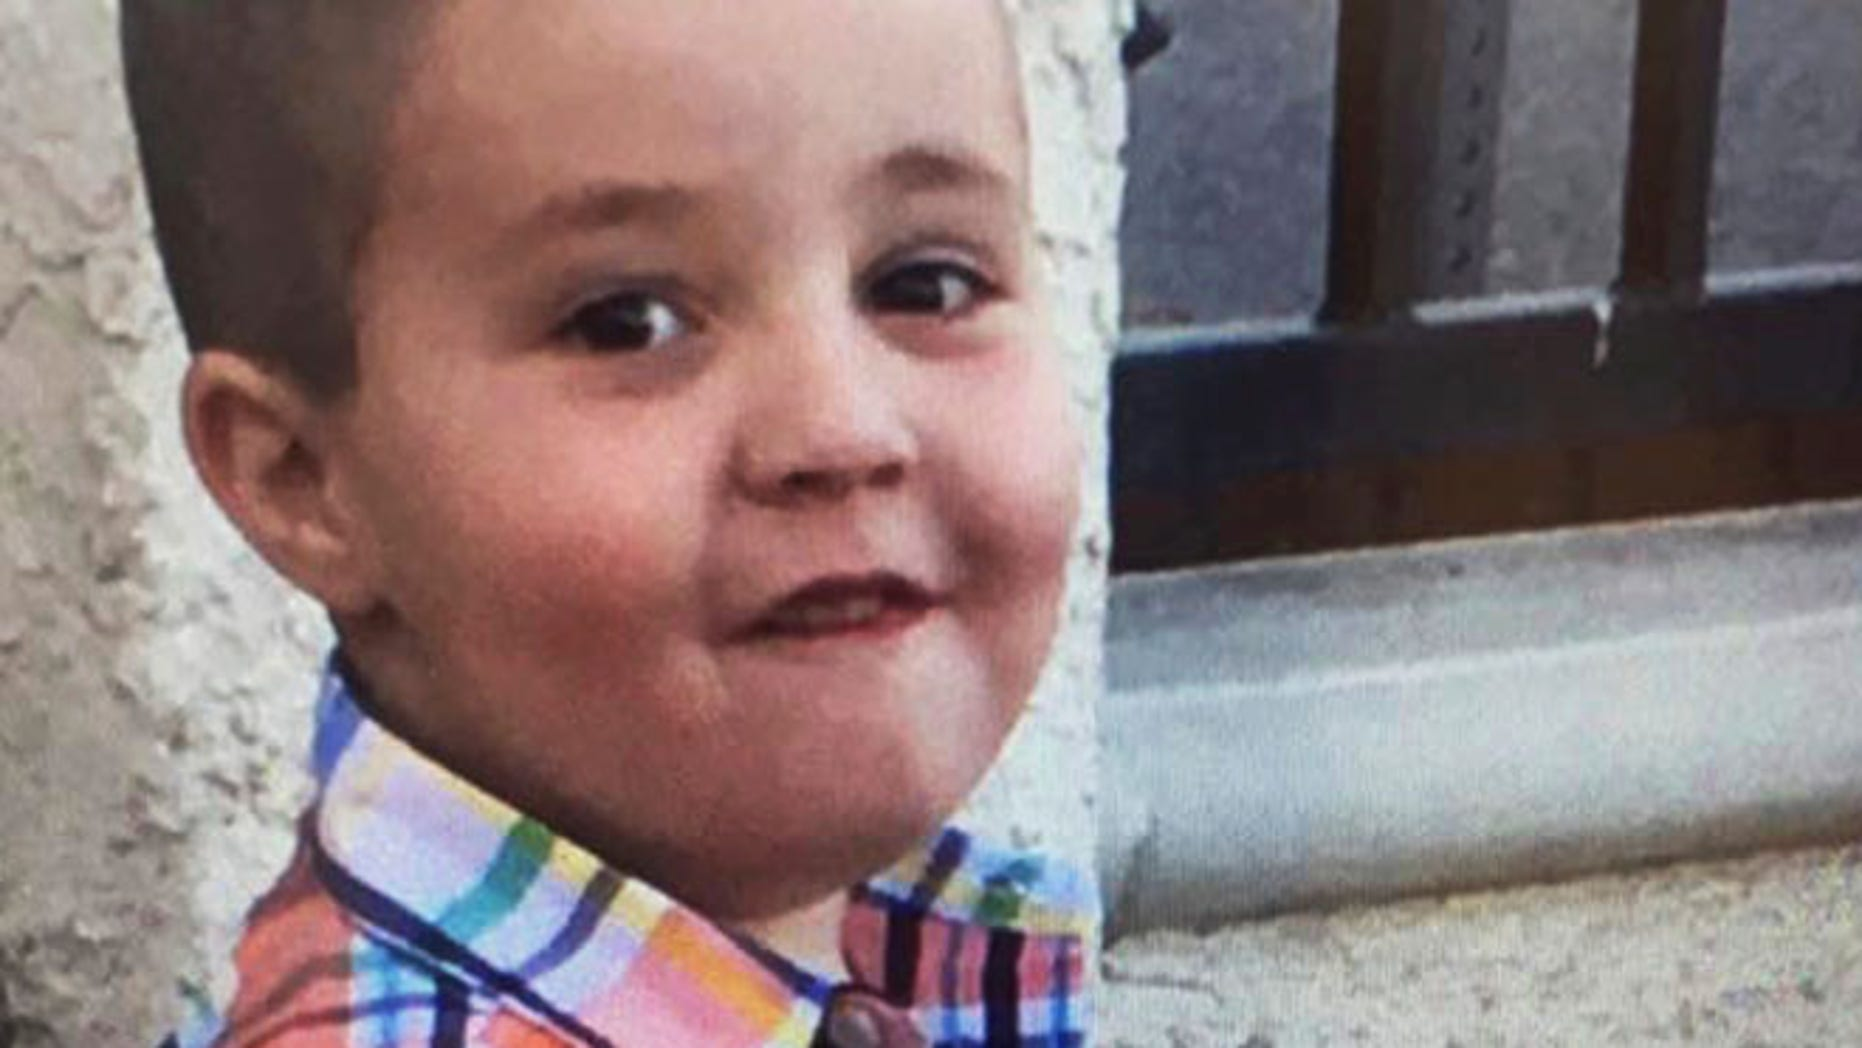 This undated photo posted on the South Pasadena, Calif., Police Department's Facebook page shows Aramazd Andressian, Jr.